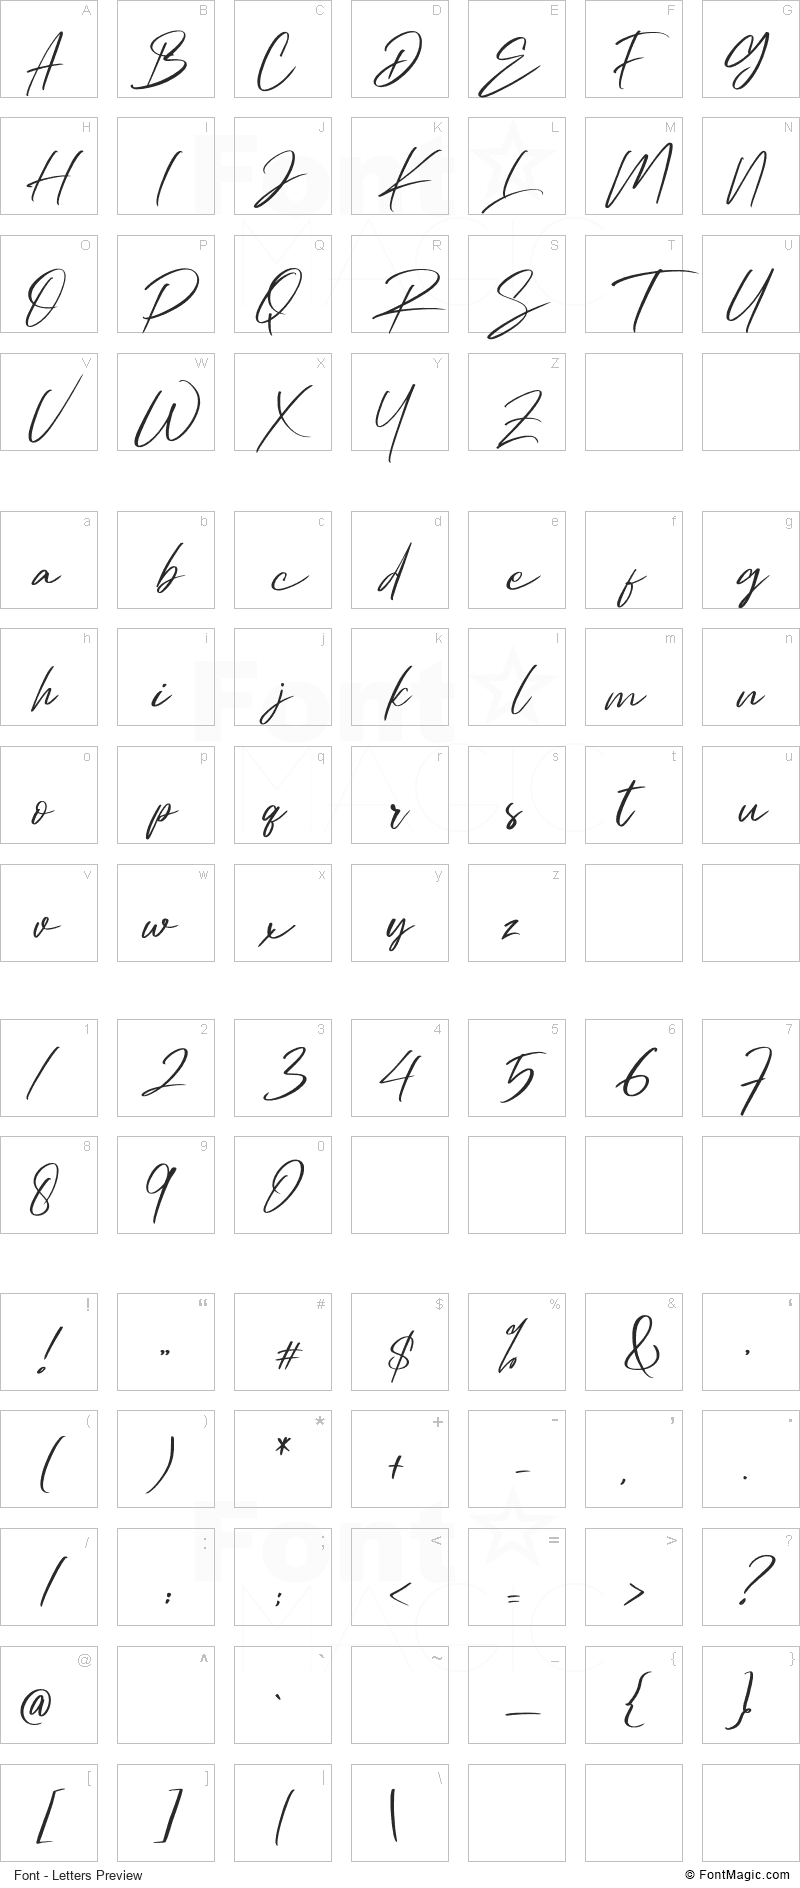 Ambitive Font - All Latters Preview Chart